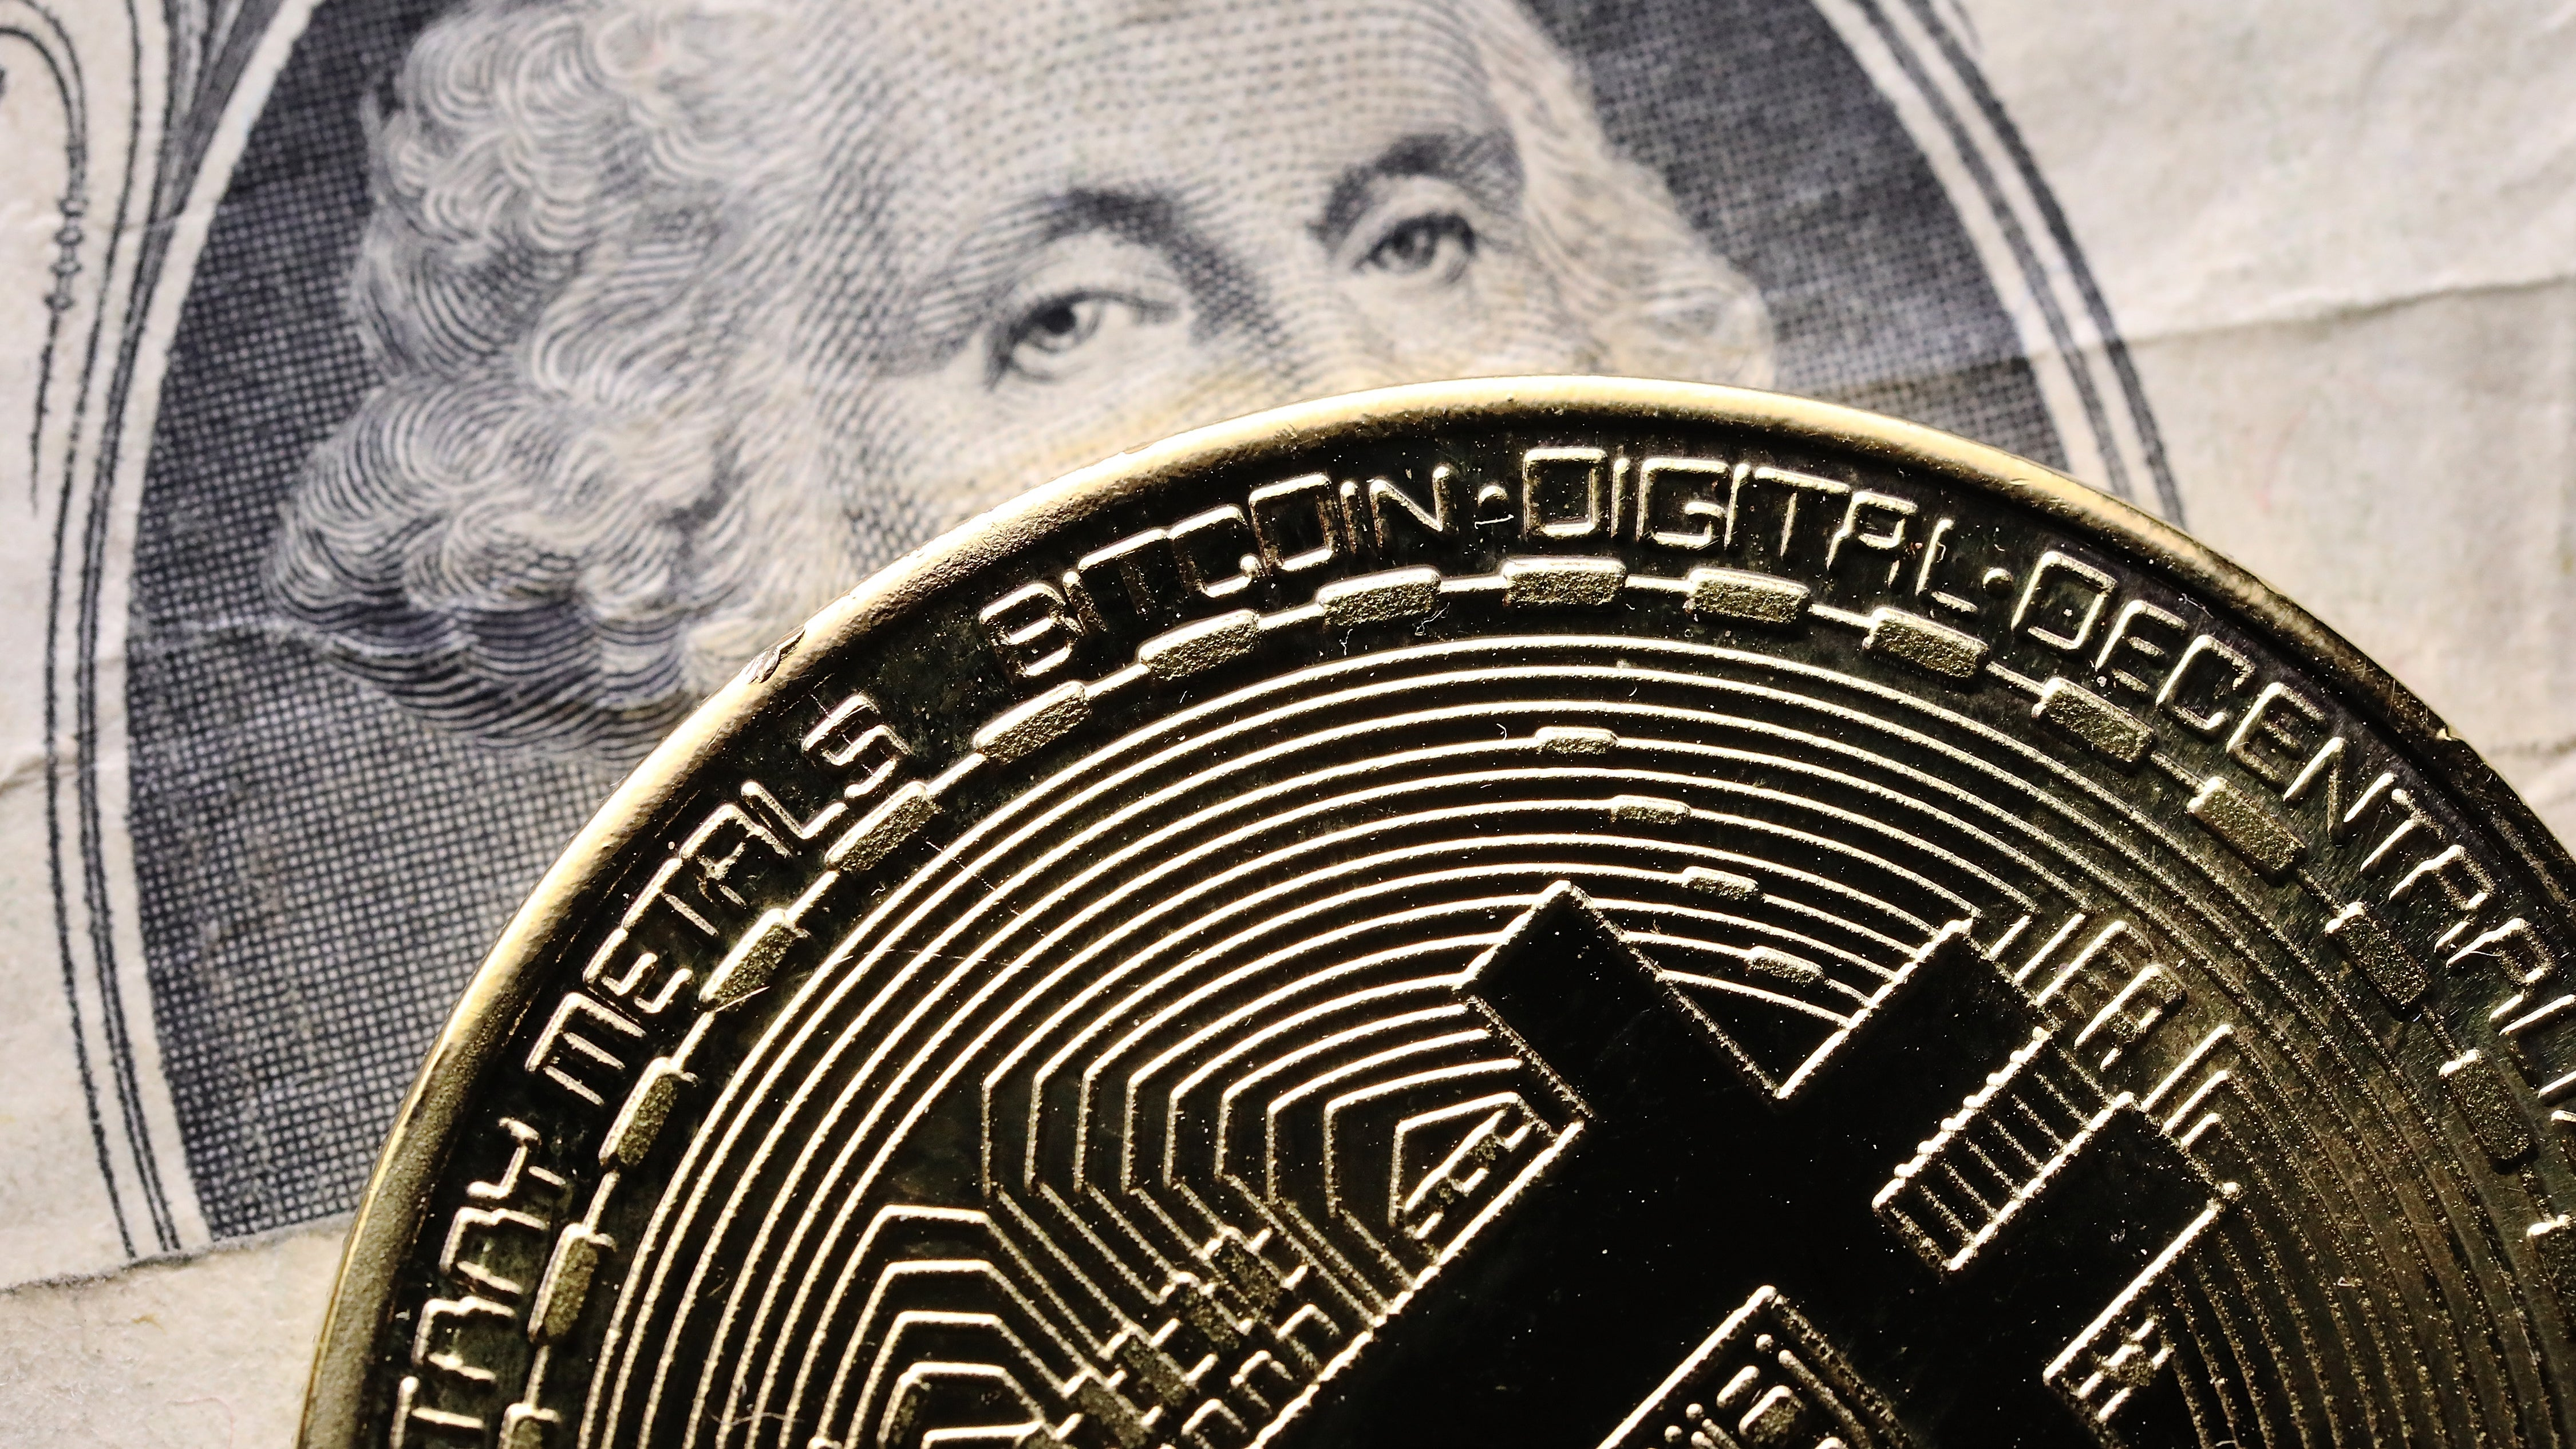 US Feds Rush To Cash In On Seized Bitcoin Cache Before The Bubble Bursts